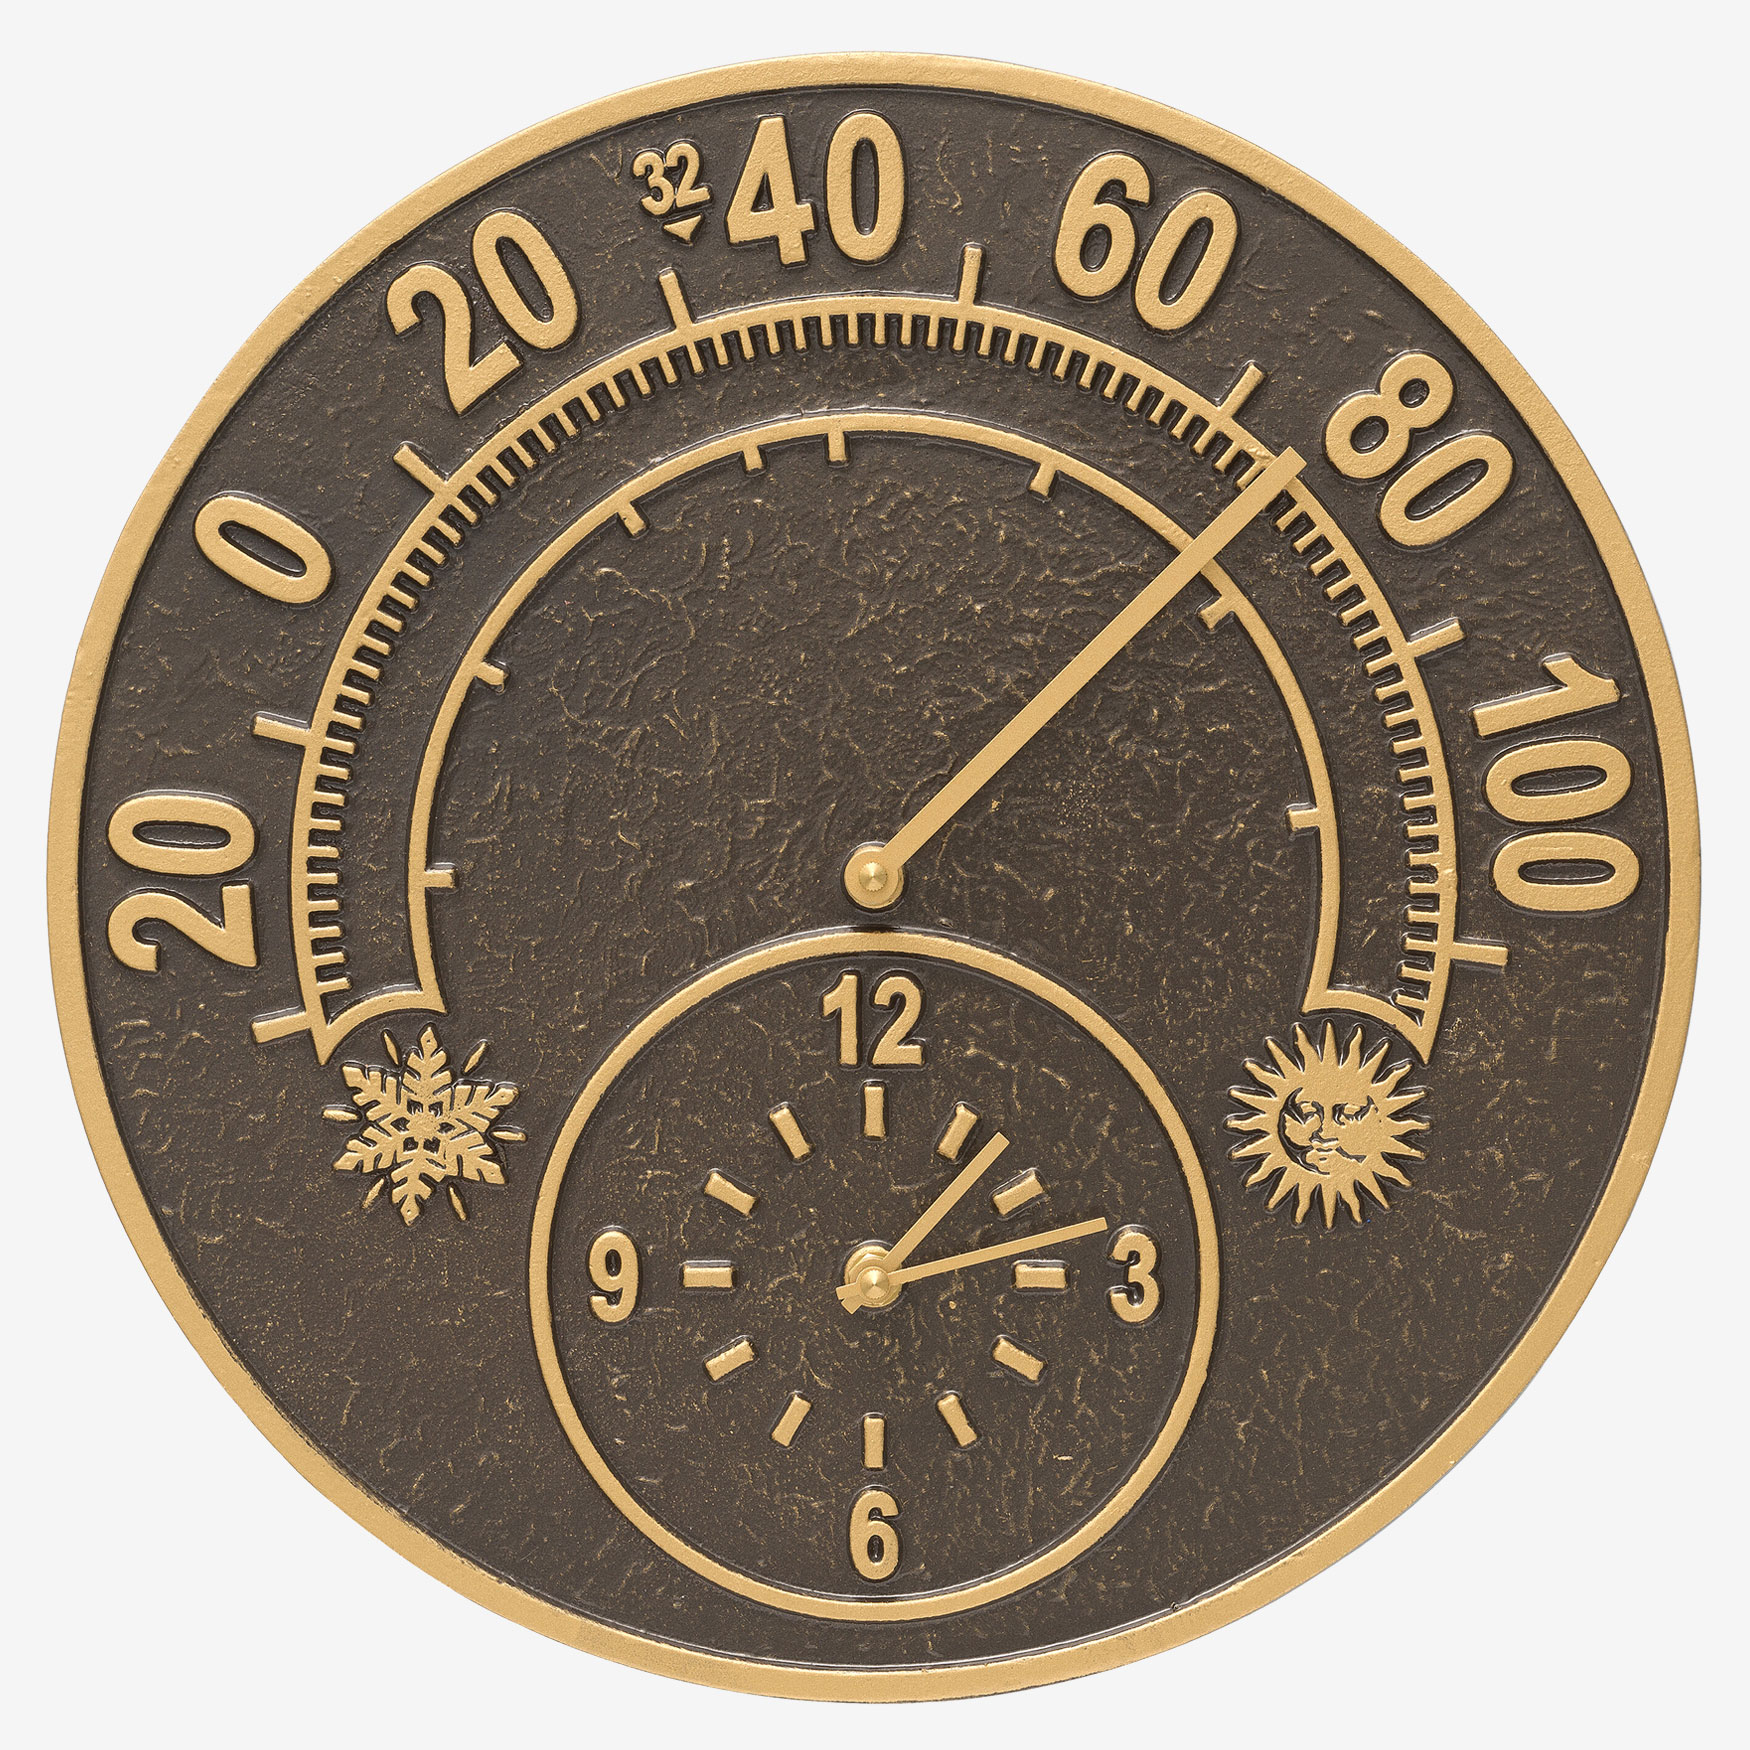 Solstice Thermometer Clock, FRENCH BRONZE